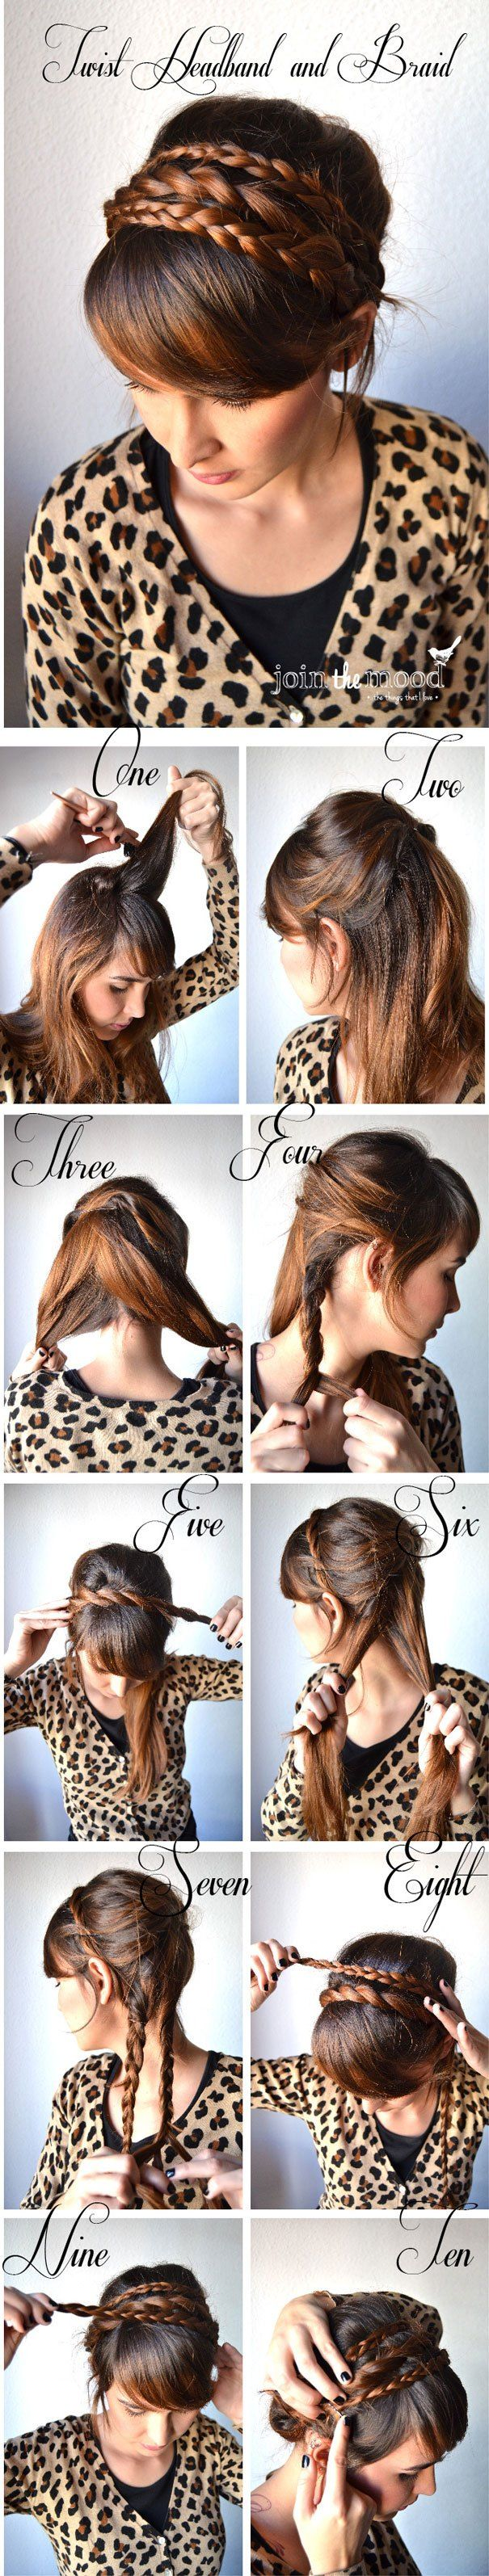 Join the Mood Twist Headband Braid Haare# Hair# Hochsteckfrisur# DIY